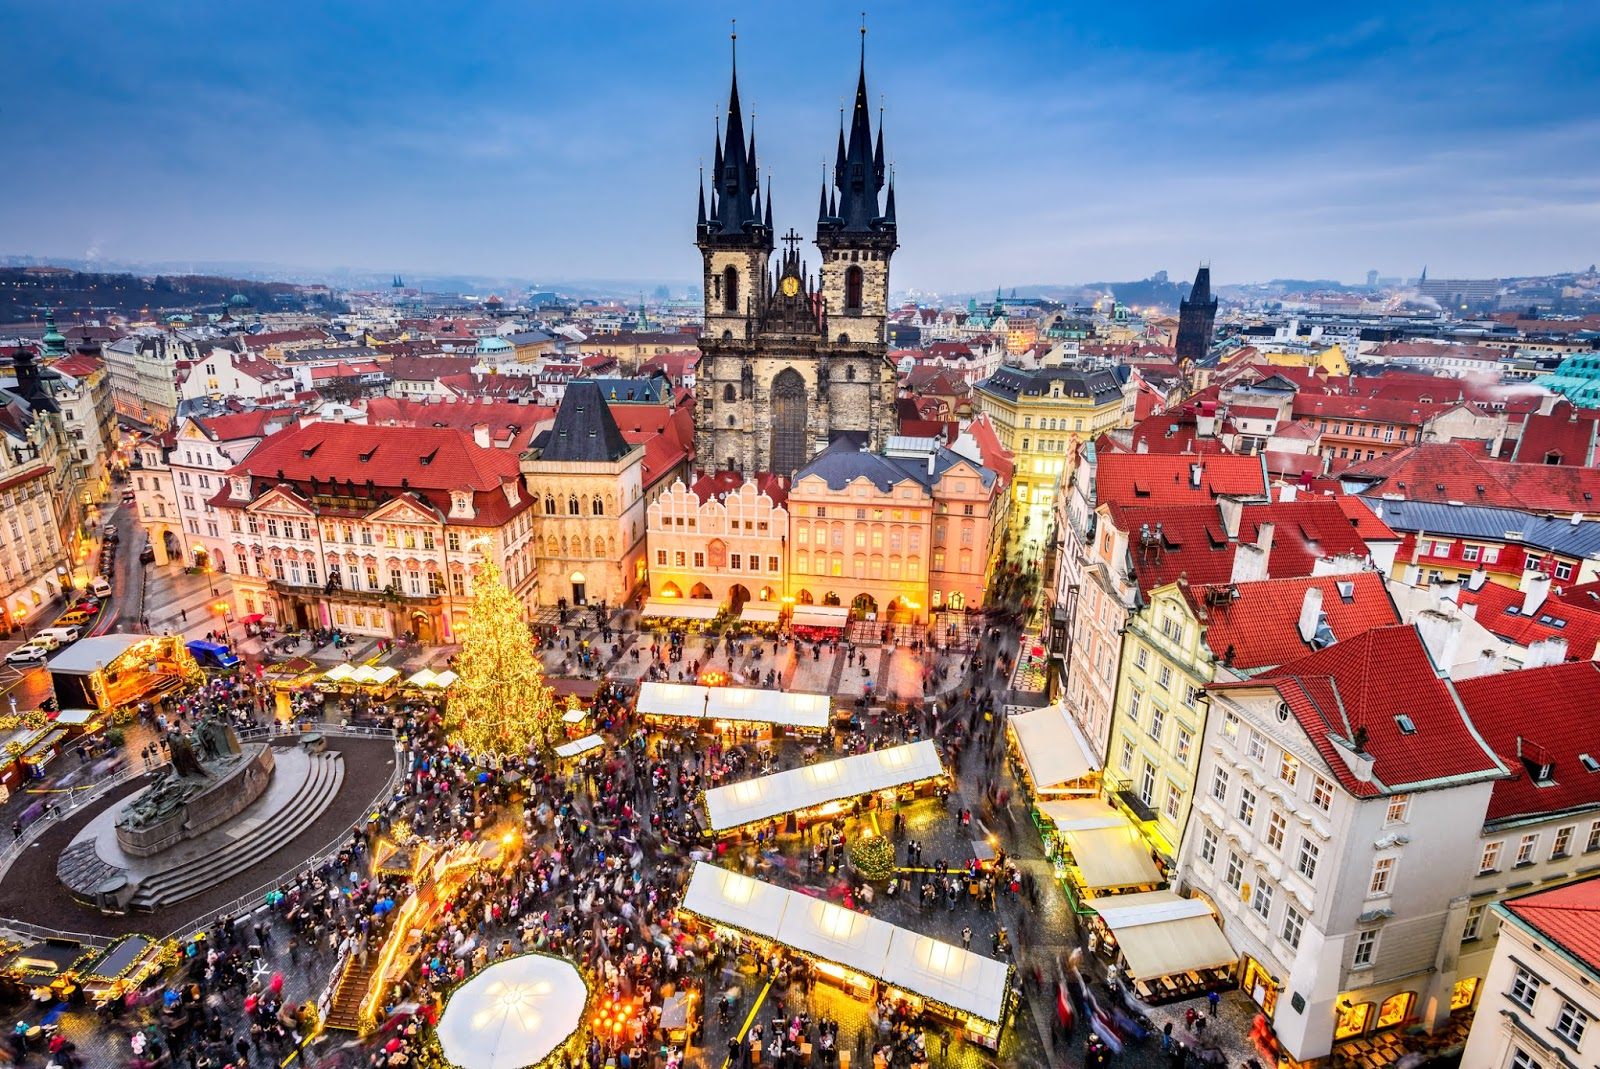 Best Christmas Towns.7 Breathtaking Magical And Festive Christmas Towns In The